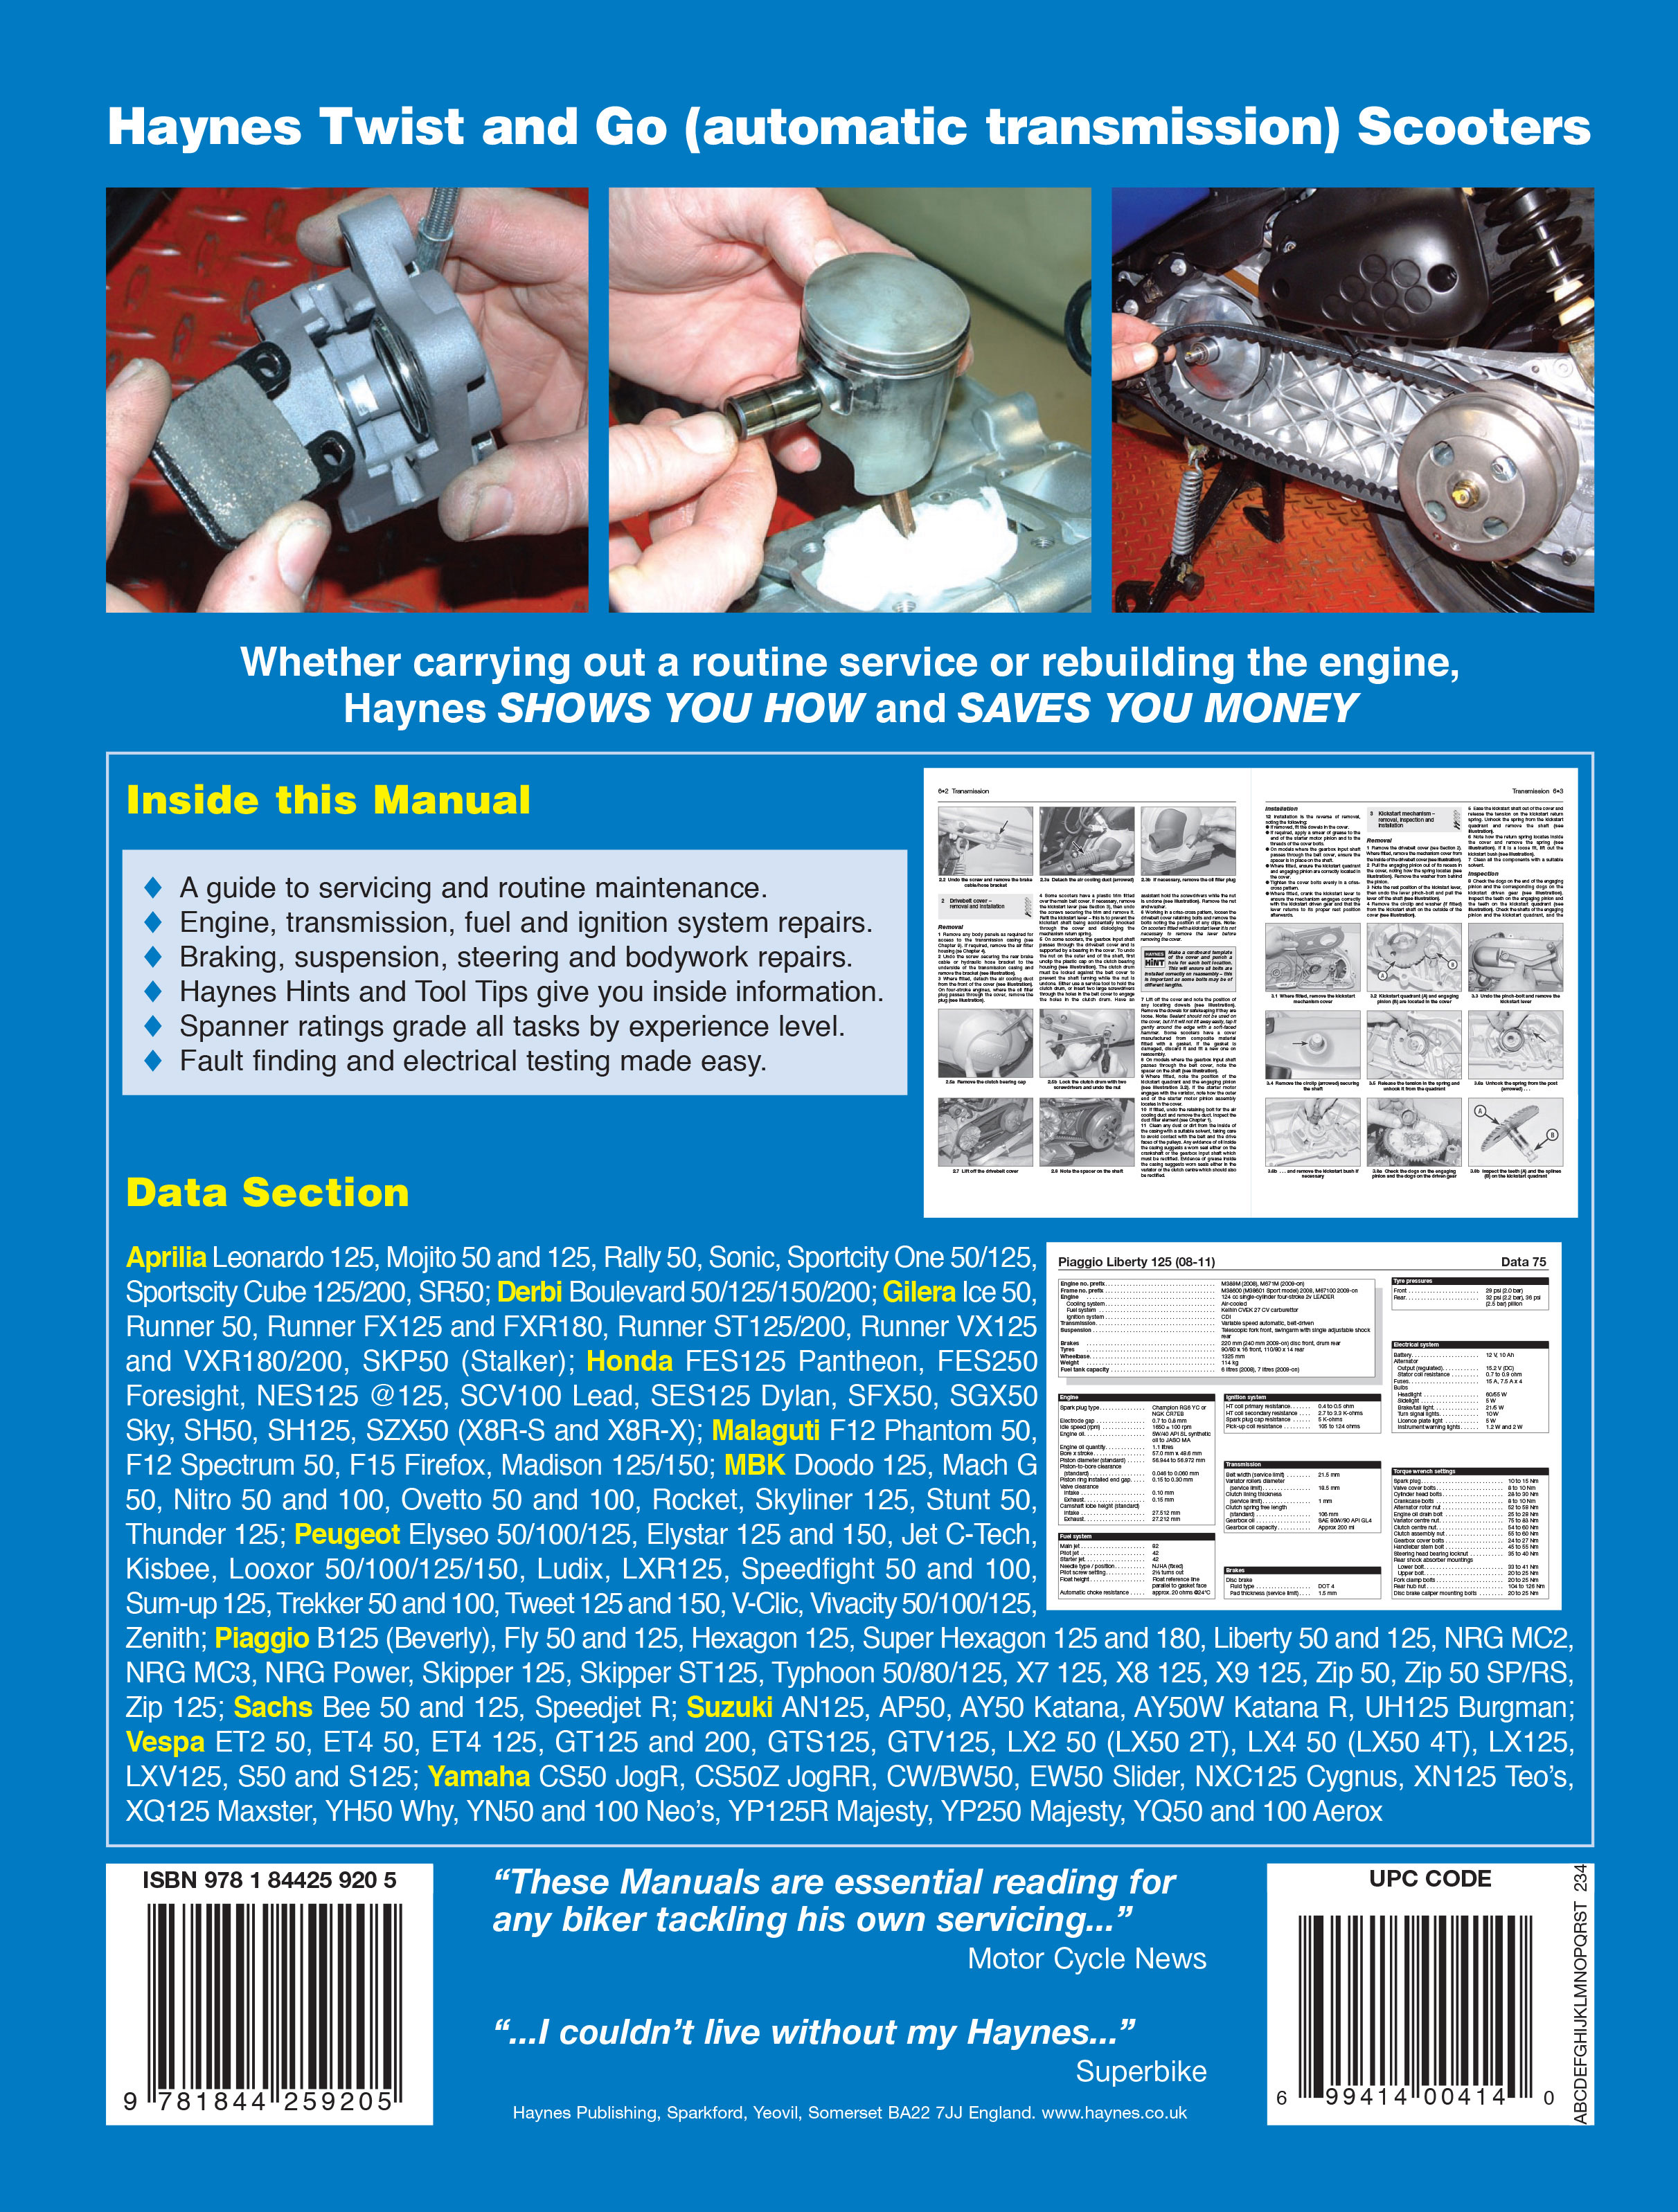 haynes repair manual twist and go automatic transmission rh motorcycleworks com Piaggio Typhoon 125 Accessories Typhoon 125